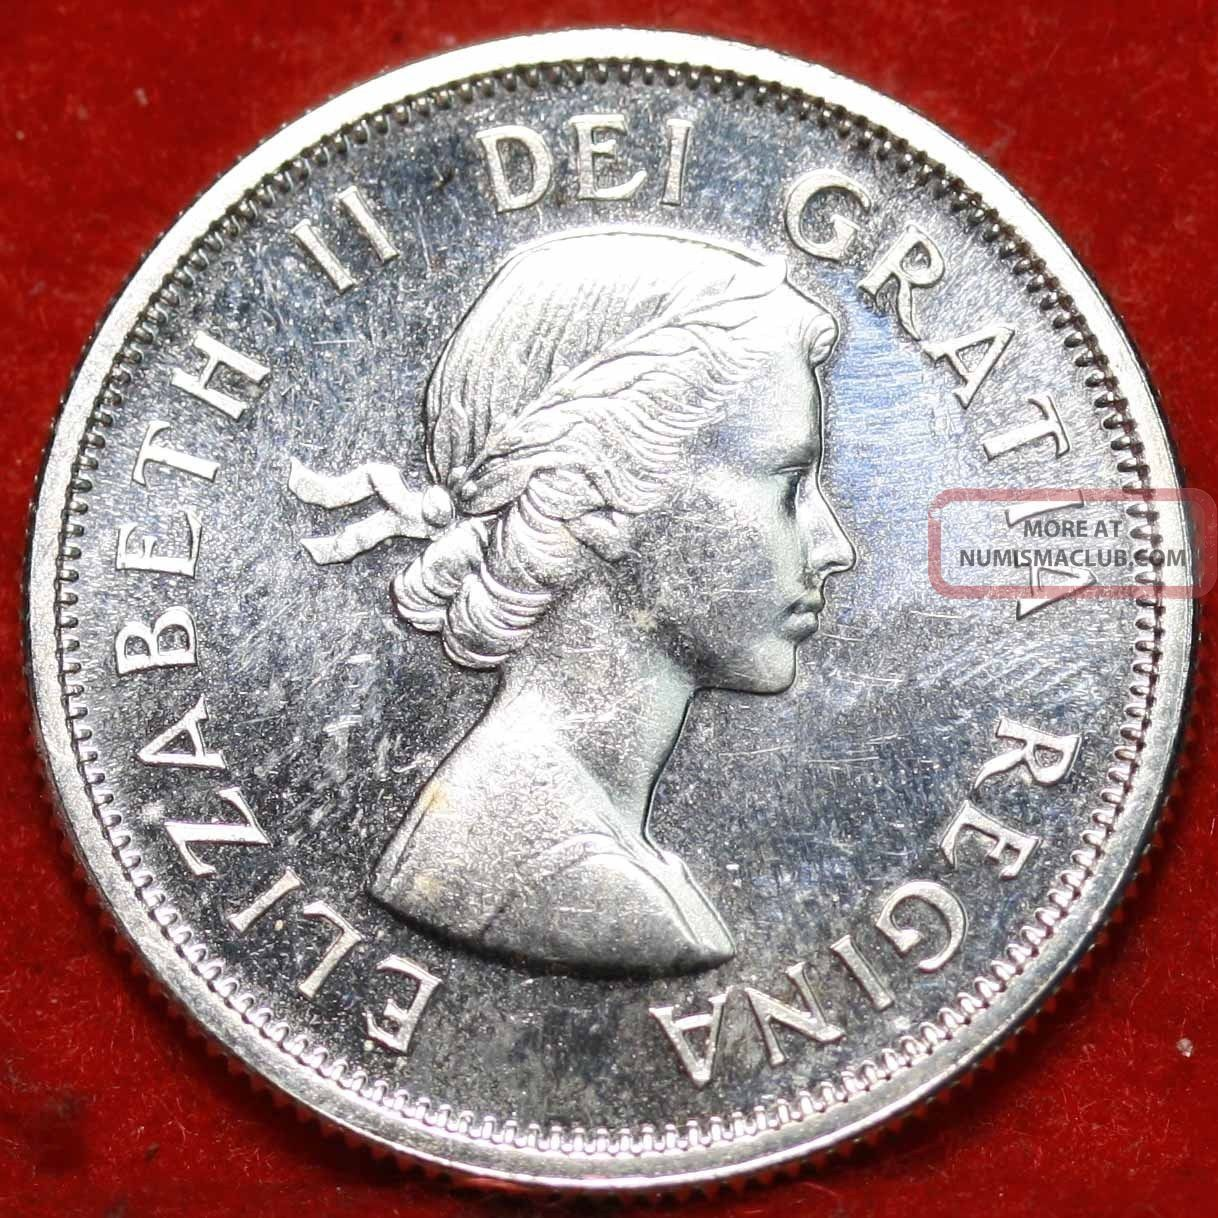 Uncirculated 1963 Canada 25 Cents Silver Foreign Coin S/h Twenty-Five Cents photo